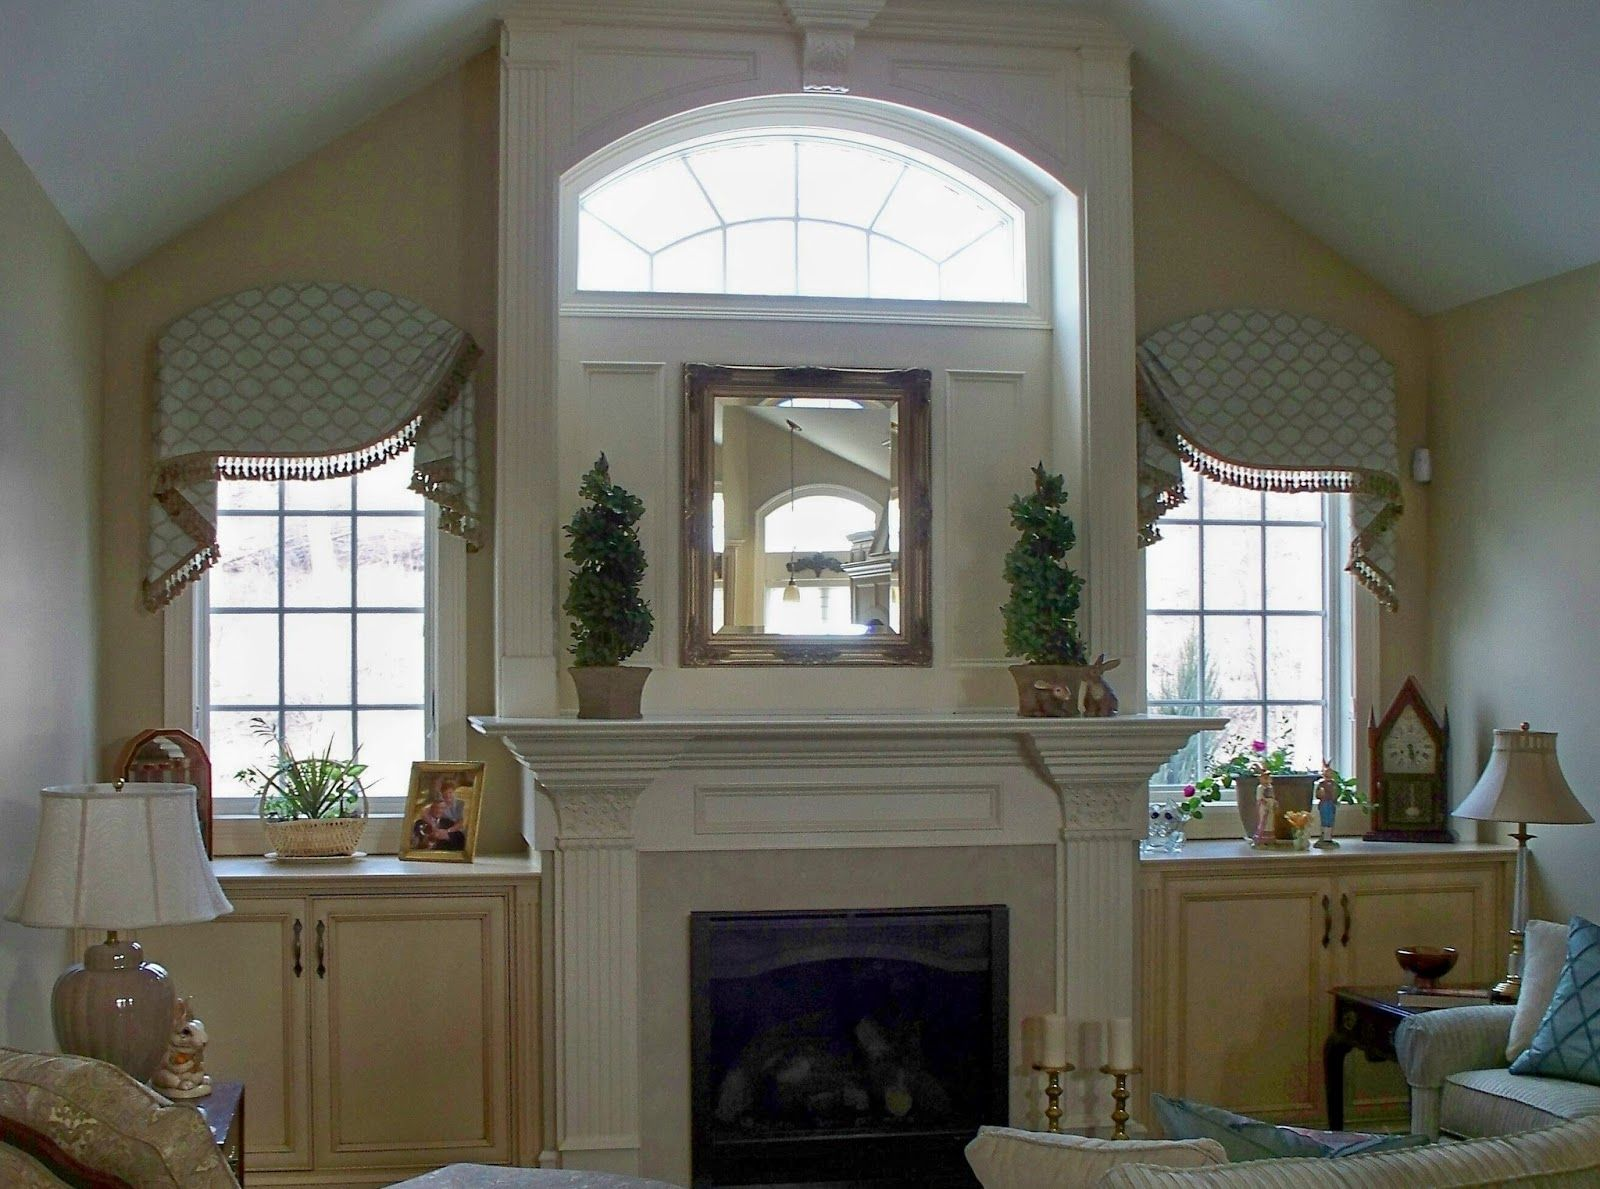 Window treatment ideas for arched windows  from the workroom of parkway window works too many curves